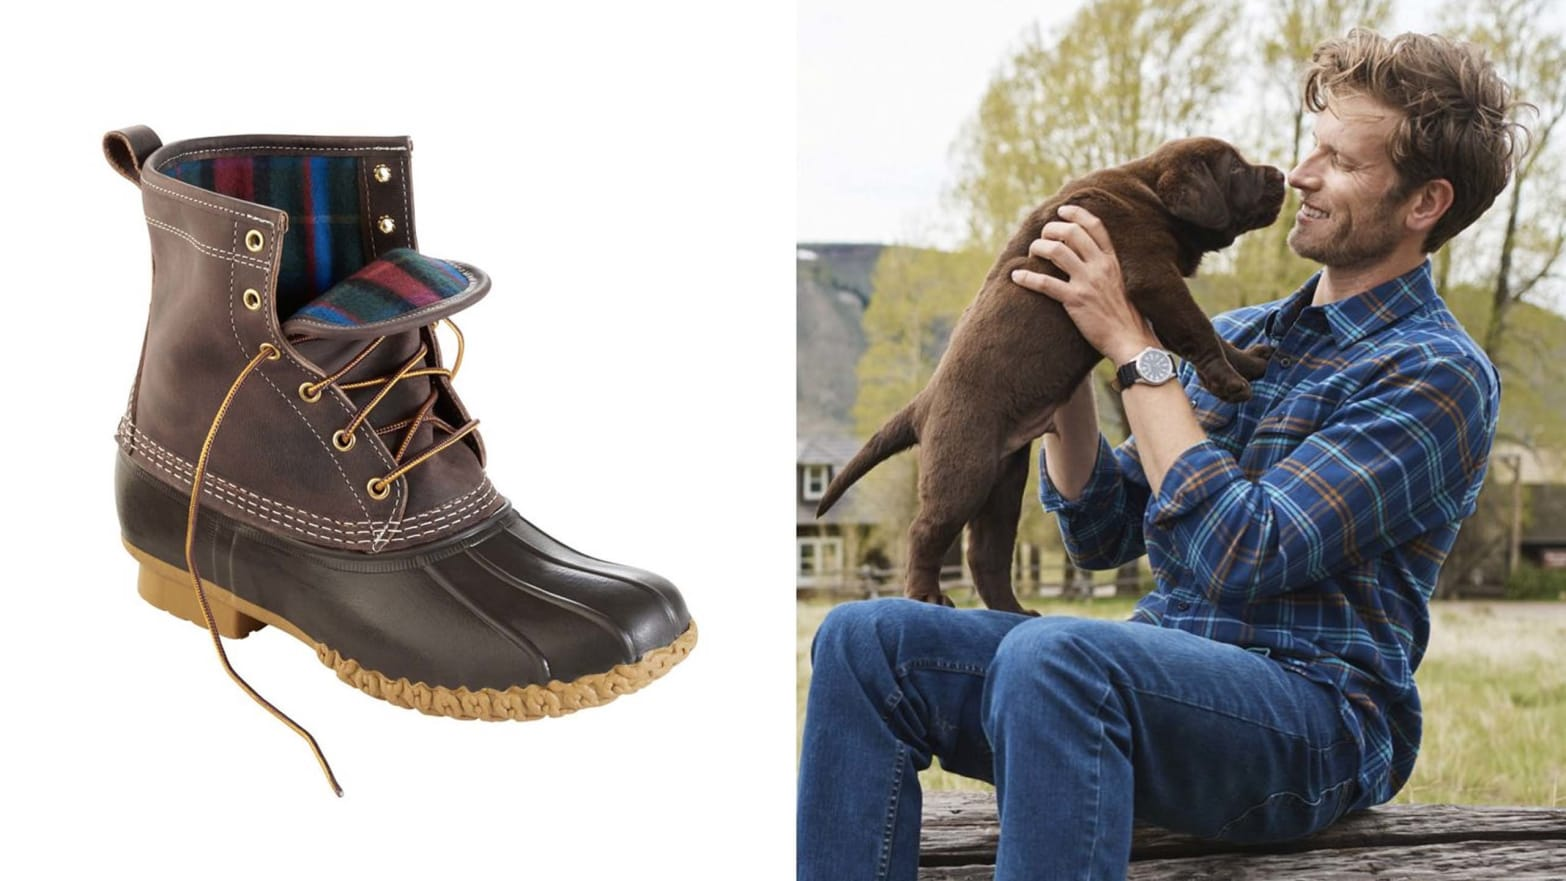 L.L.Bean Flannel Shirts, Sheets, and Bean Boots are 20% Off